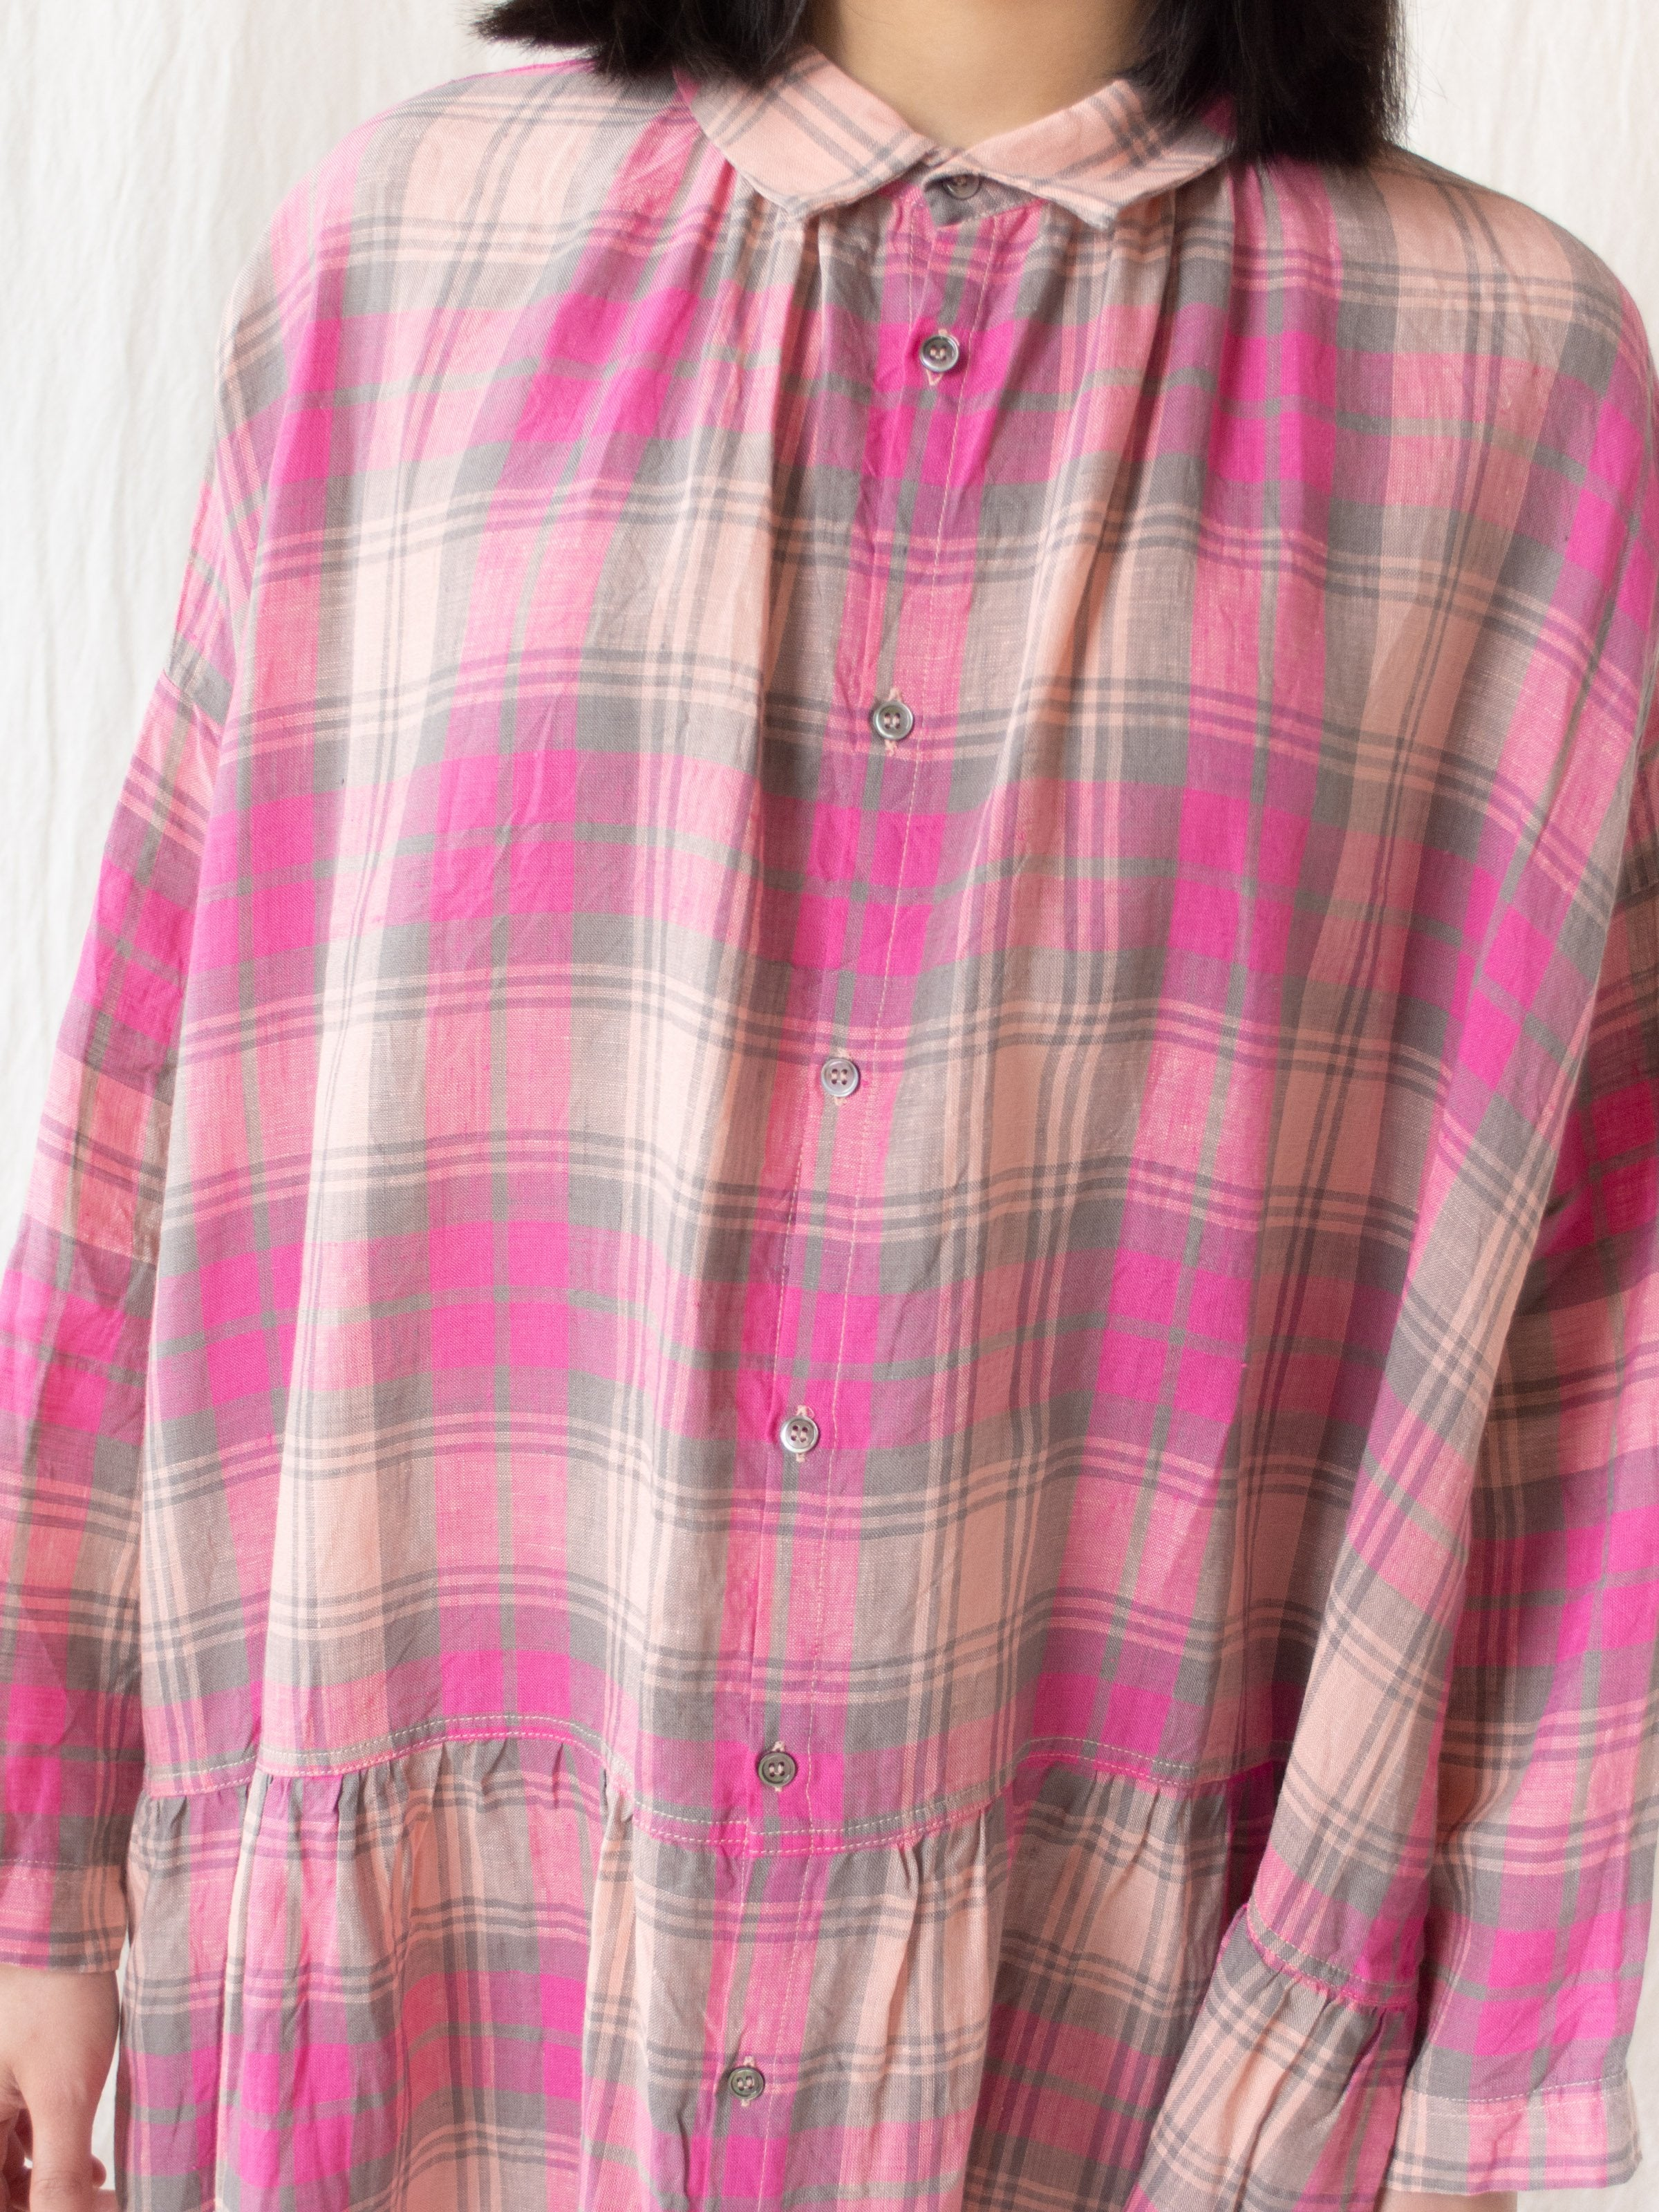 Namu Shop - Ichi Antiquites Linen Tartan Check Dress - Pink